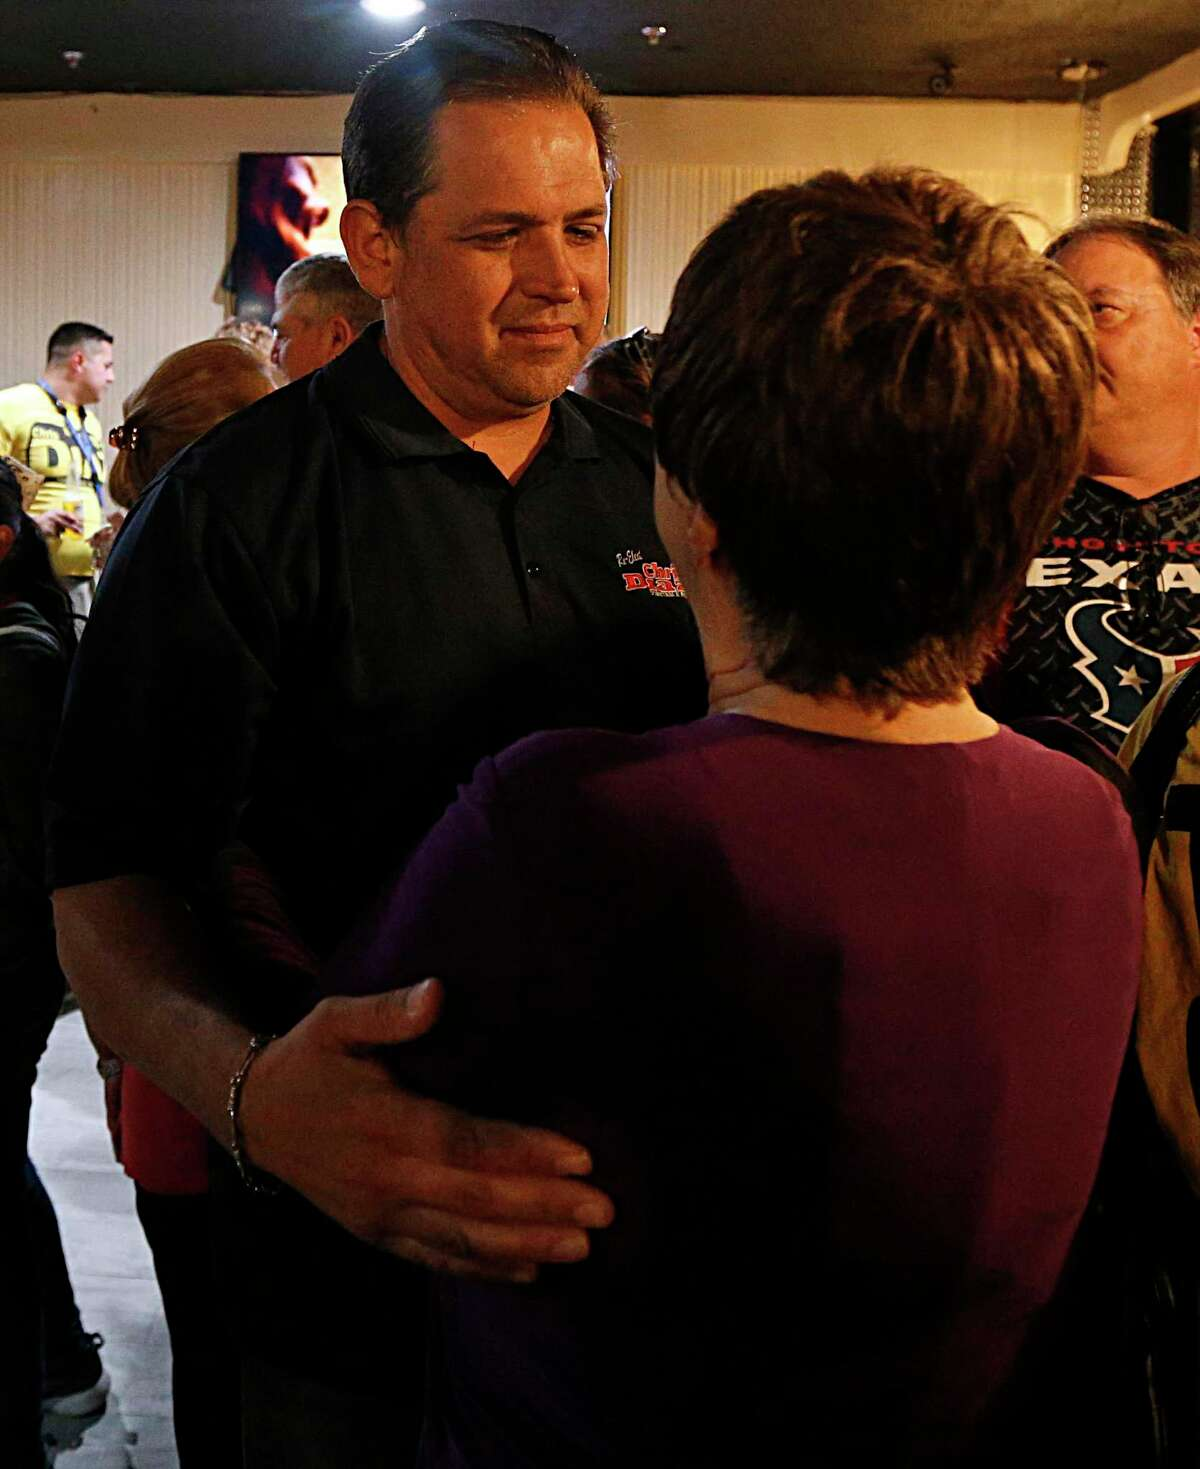 Harris County Precinct 2 Constable Chris Diaz left, thanks a supporter during his election night watch party at the Quality Inn hotel Tuesday, March 1, 2016, in Houston. ( James Nielsen / Houston Chronicle )